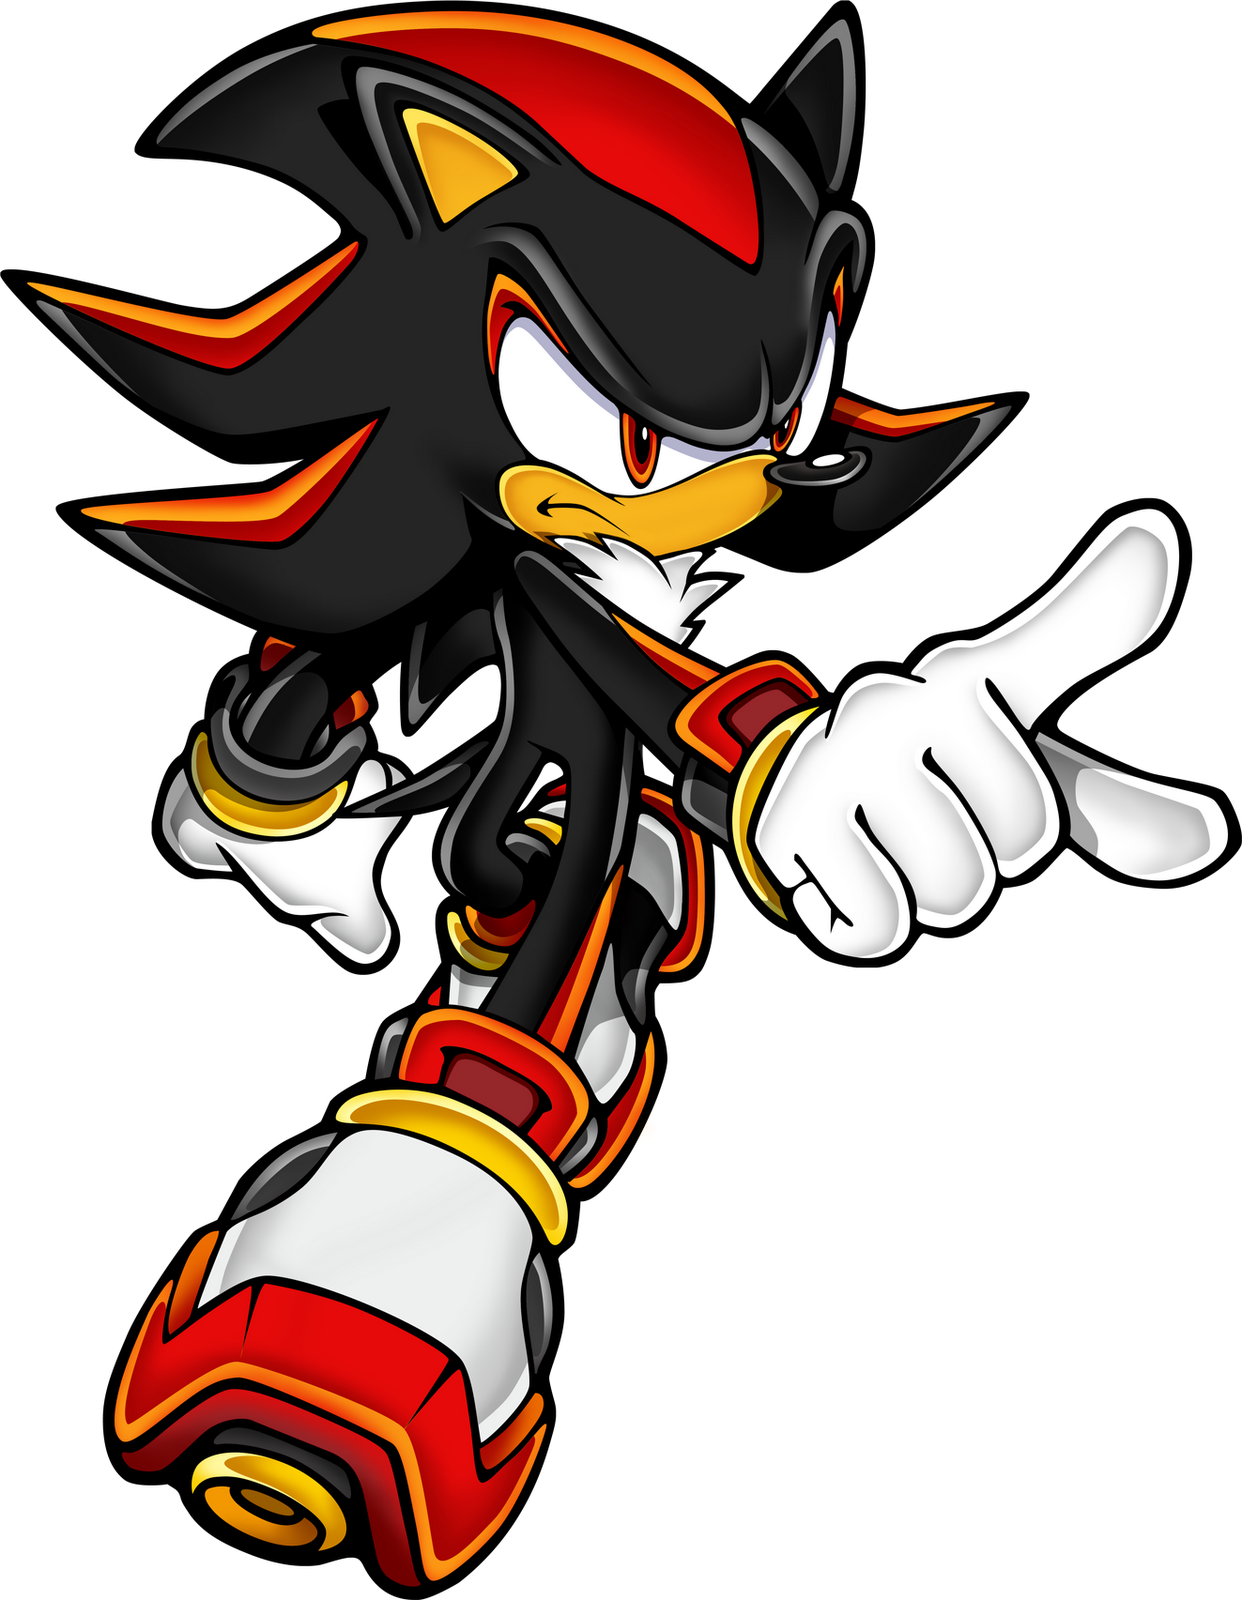 Gambar format png. Sonic the hedgehog transparent